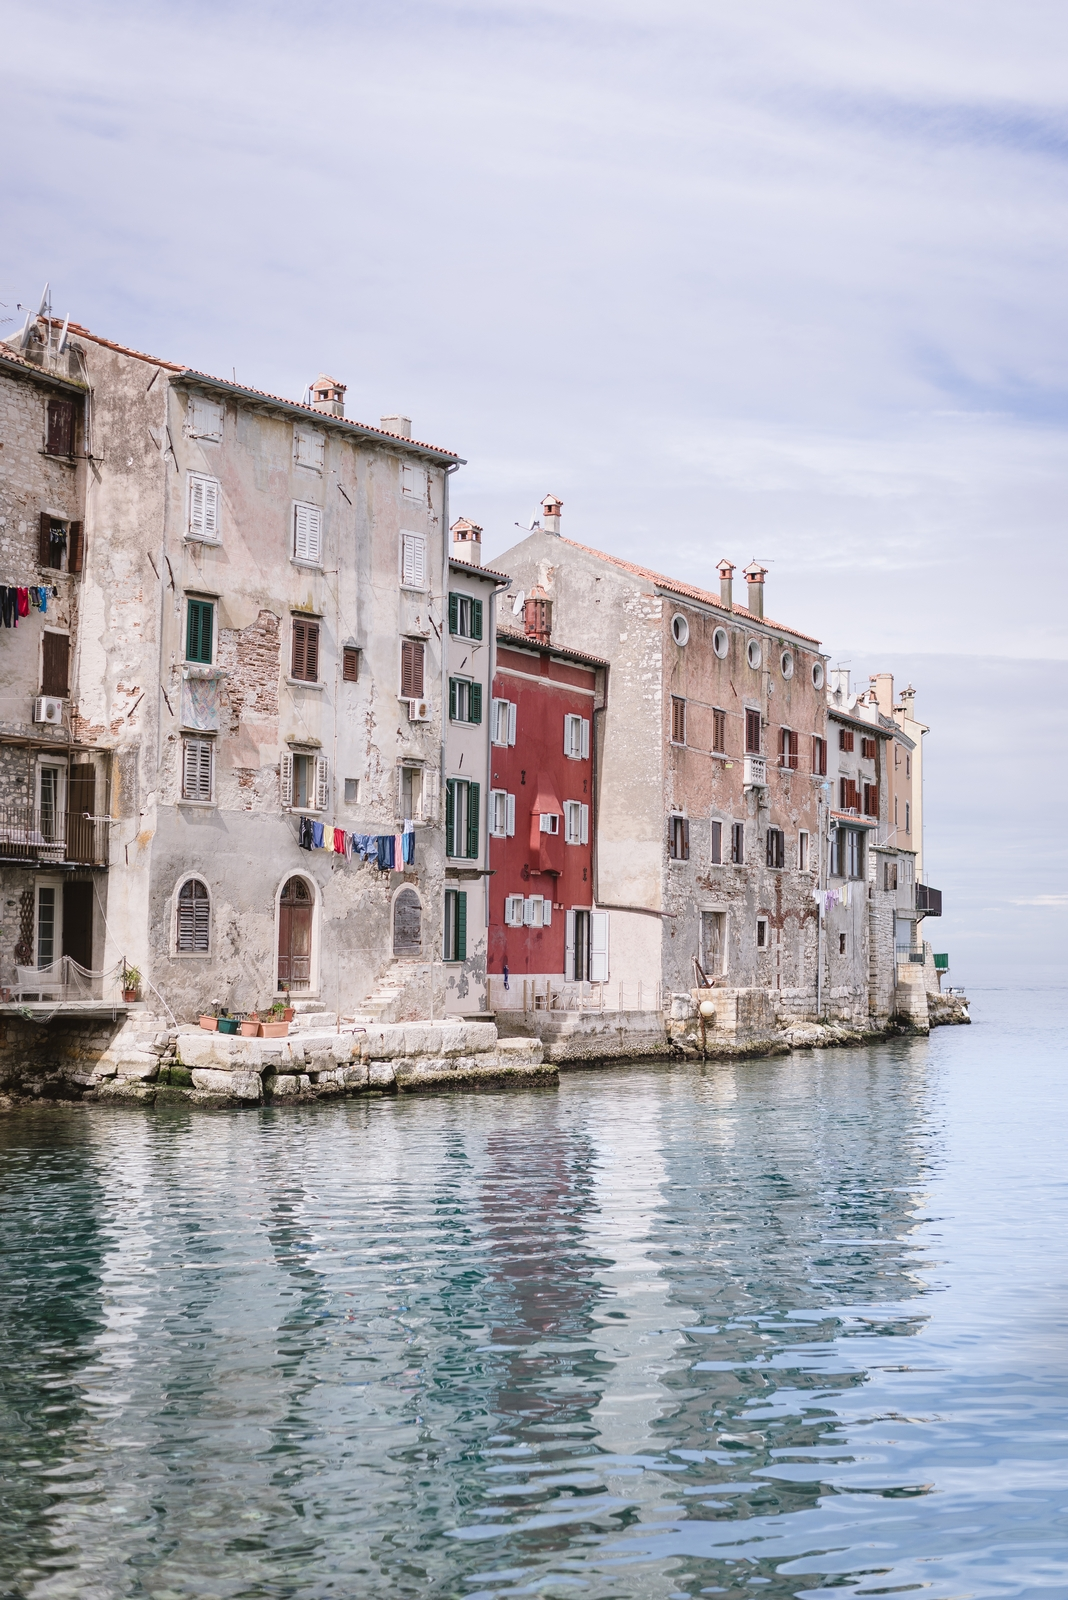 Gorgeous architecture of the old town of Rovinj. It is one of the most beautiful places on the Istrian peninsula and all over Croatia - from travel blog http://Epepa.eu